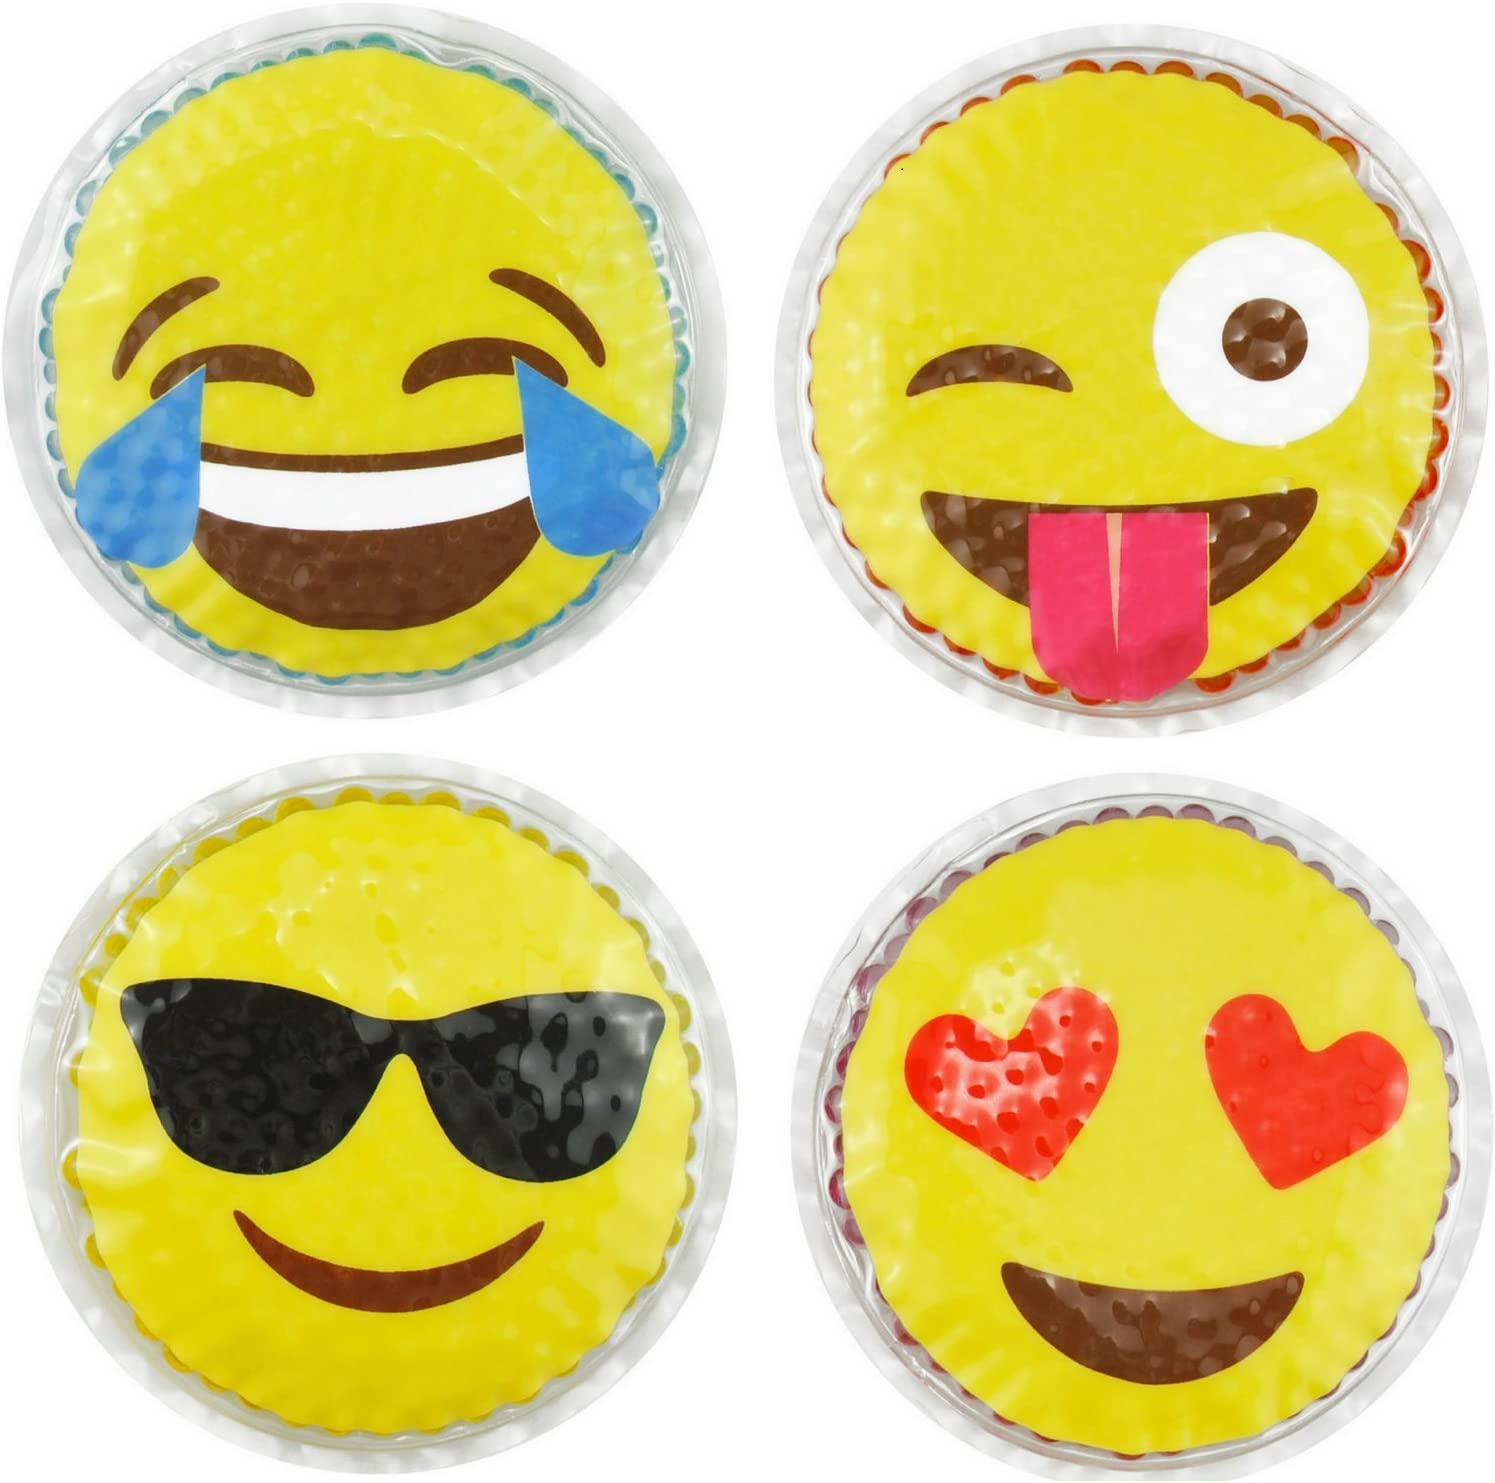 Hot Selling and selling Cold Kids Emoji Super intense SALE Boo Ice Packs by 4 Fu Pack Care FOMI